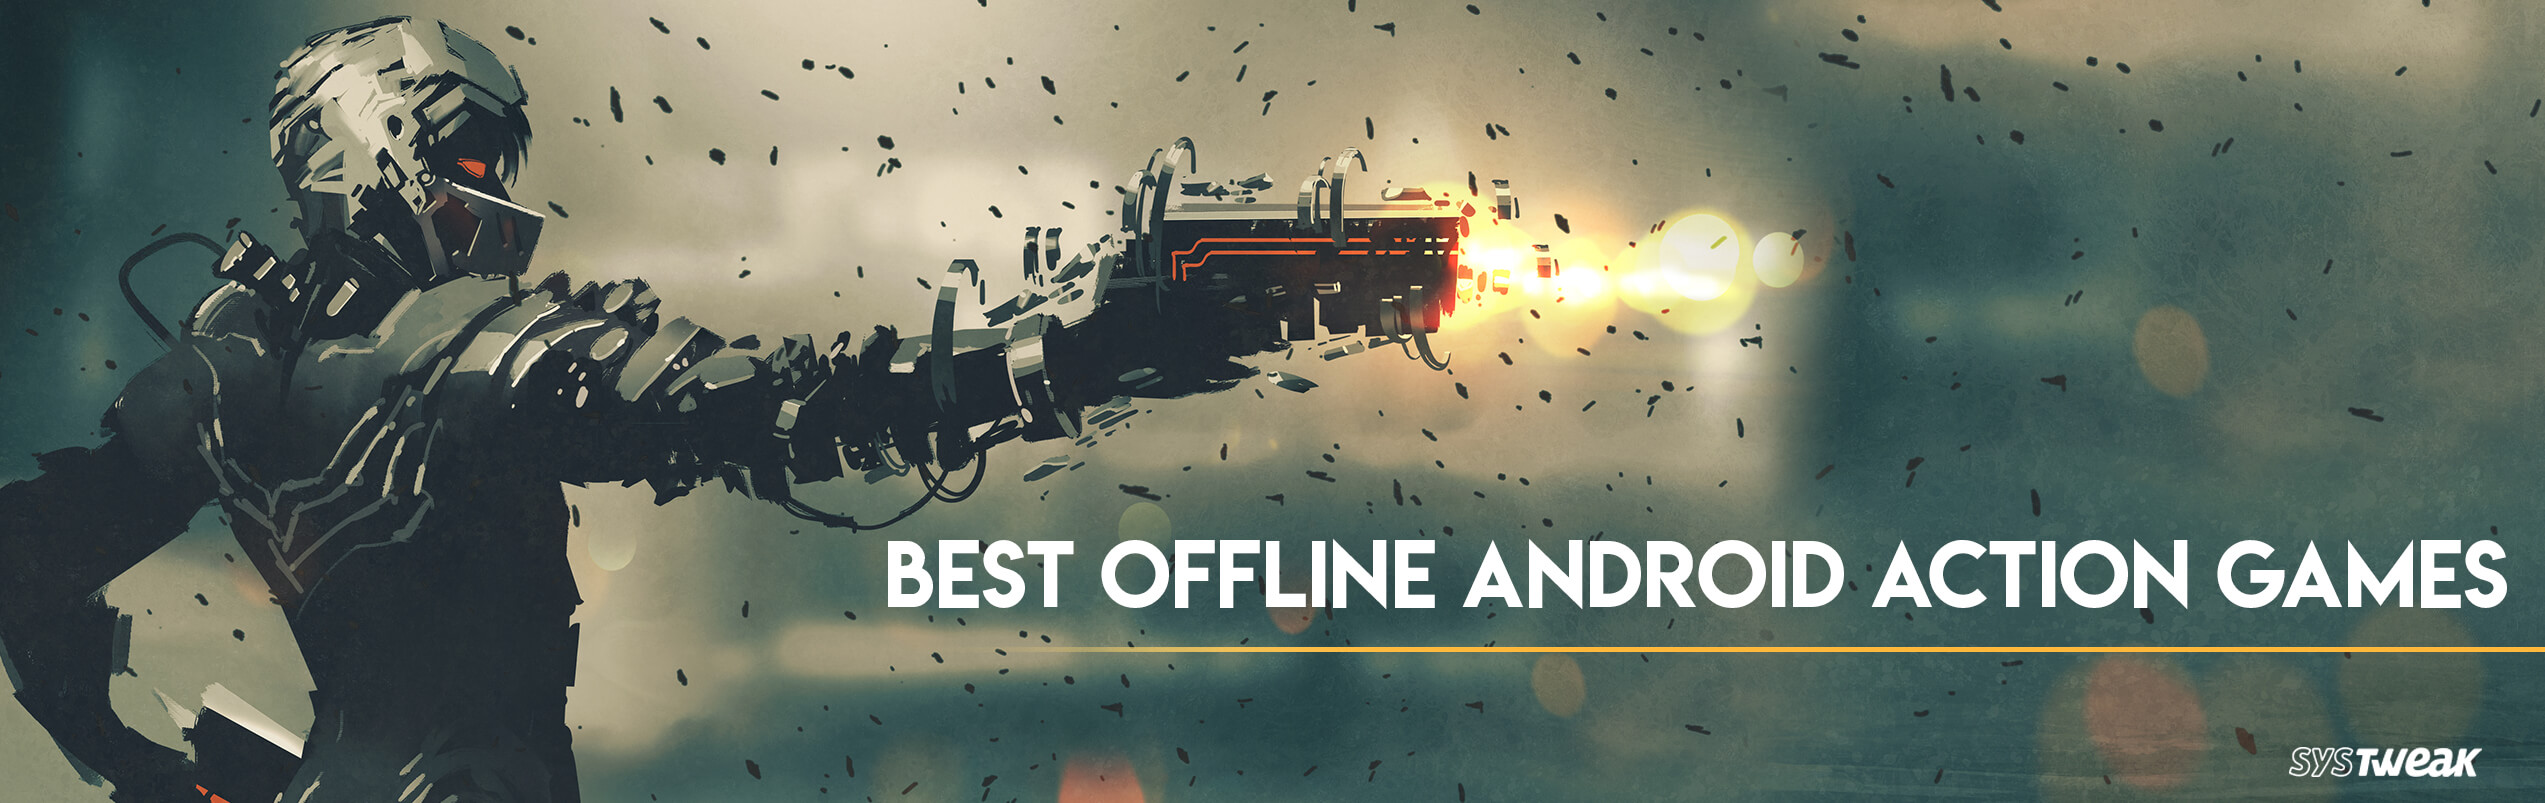 Top 10 Action Games For Android To Play Offline In 2018